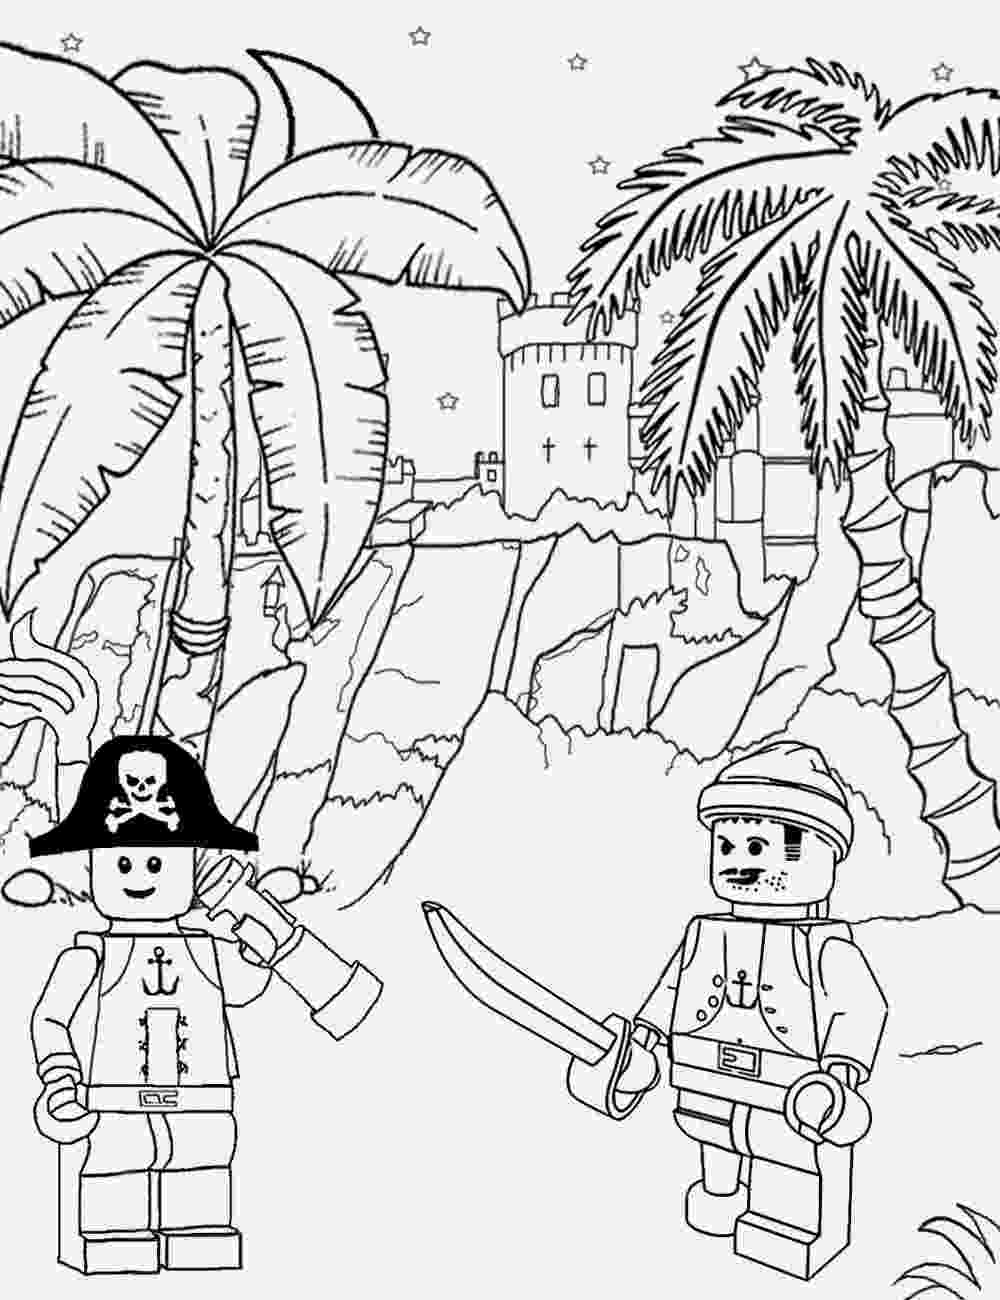 pirates of the caribbean pictures to print free coloring pages printable pictures to color kids print pictures caribbean to the pirates of